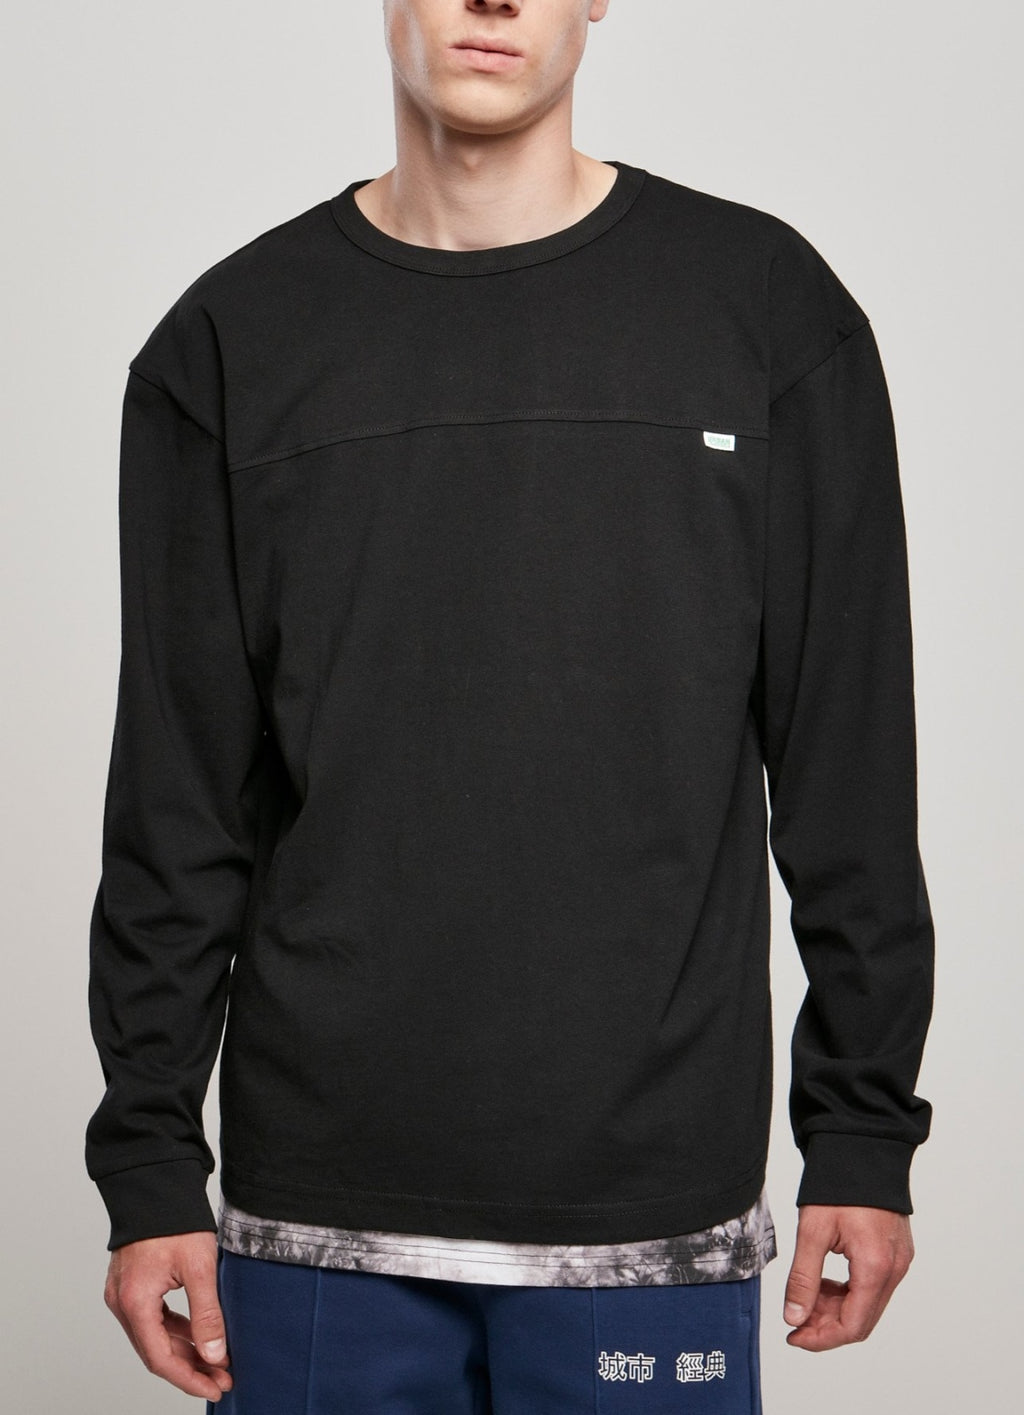 Organic Cotton Short Curved Oversized Longsleeve (sizes S-5xl) Black / s T-shirt Urban Classics